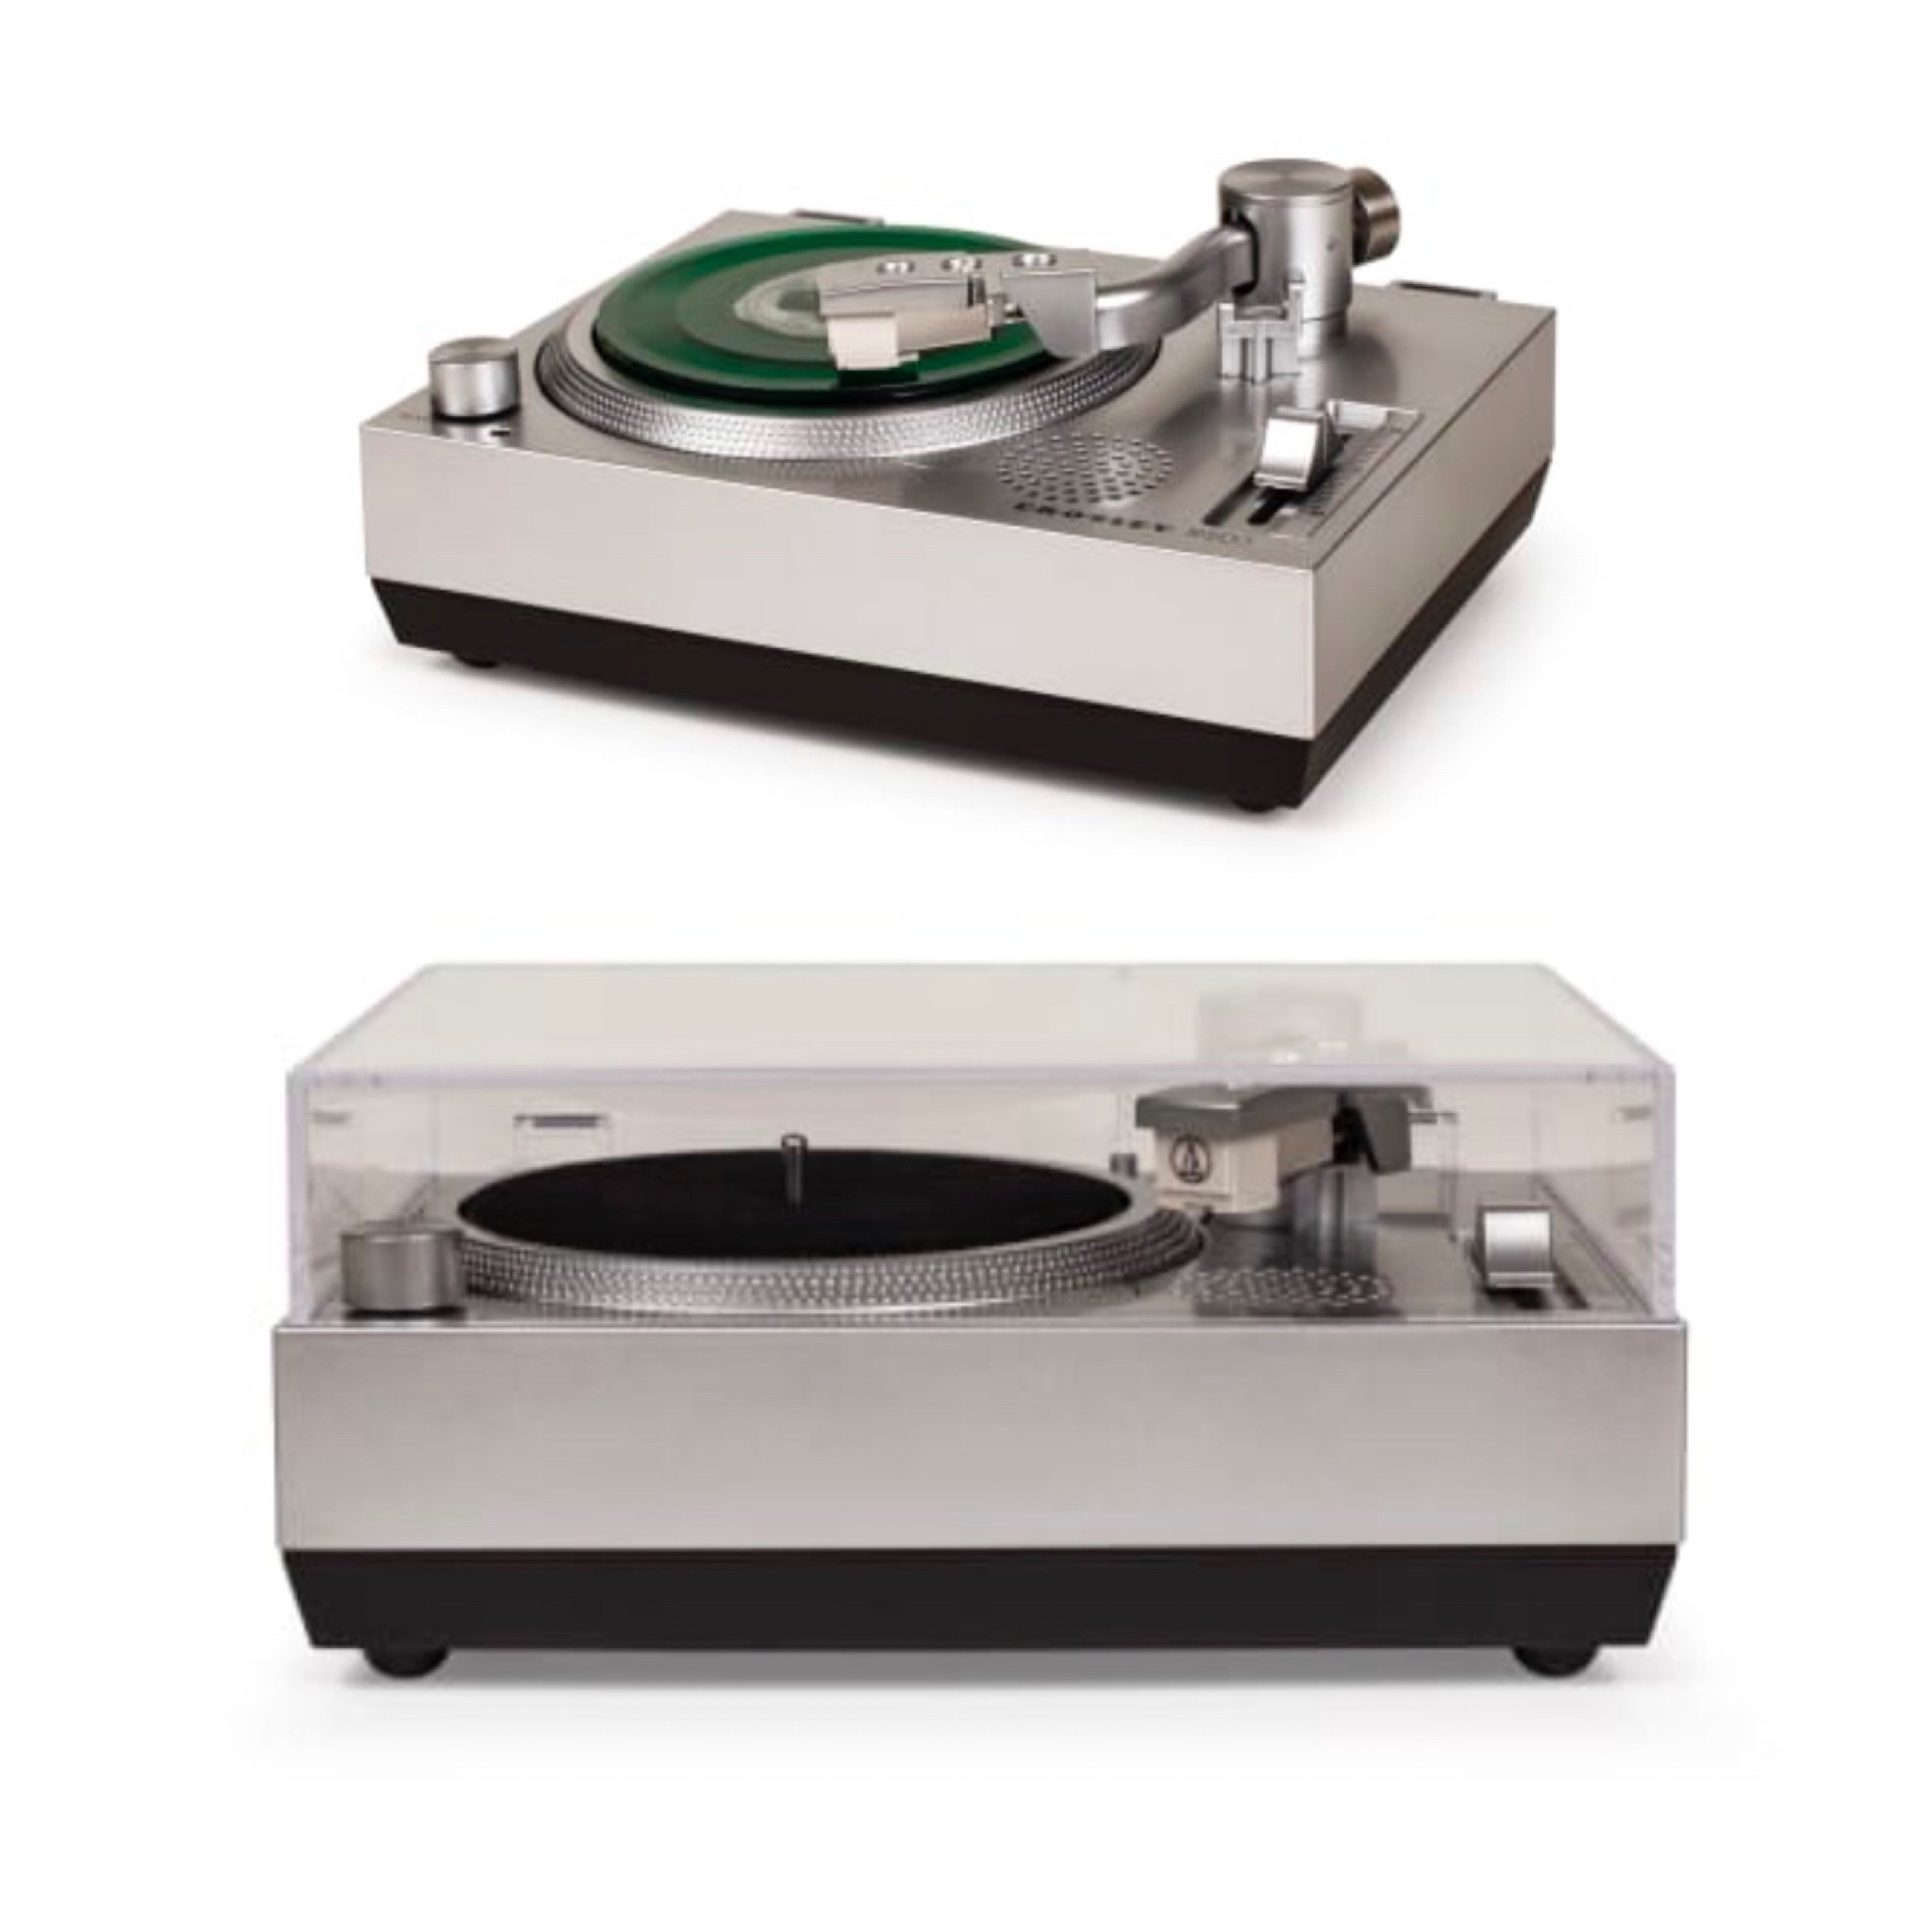 3 Inch - Mini 3 Inch Record Player (Tech 1200 style)